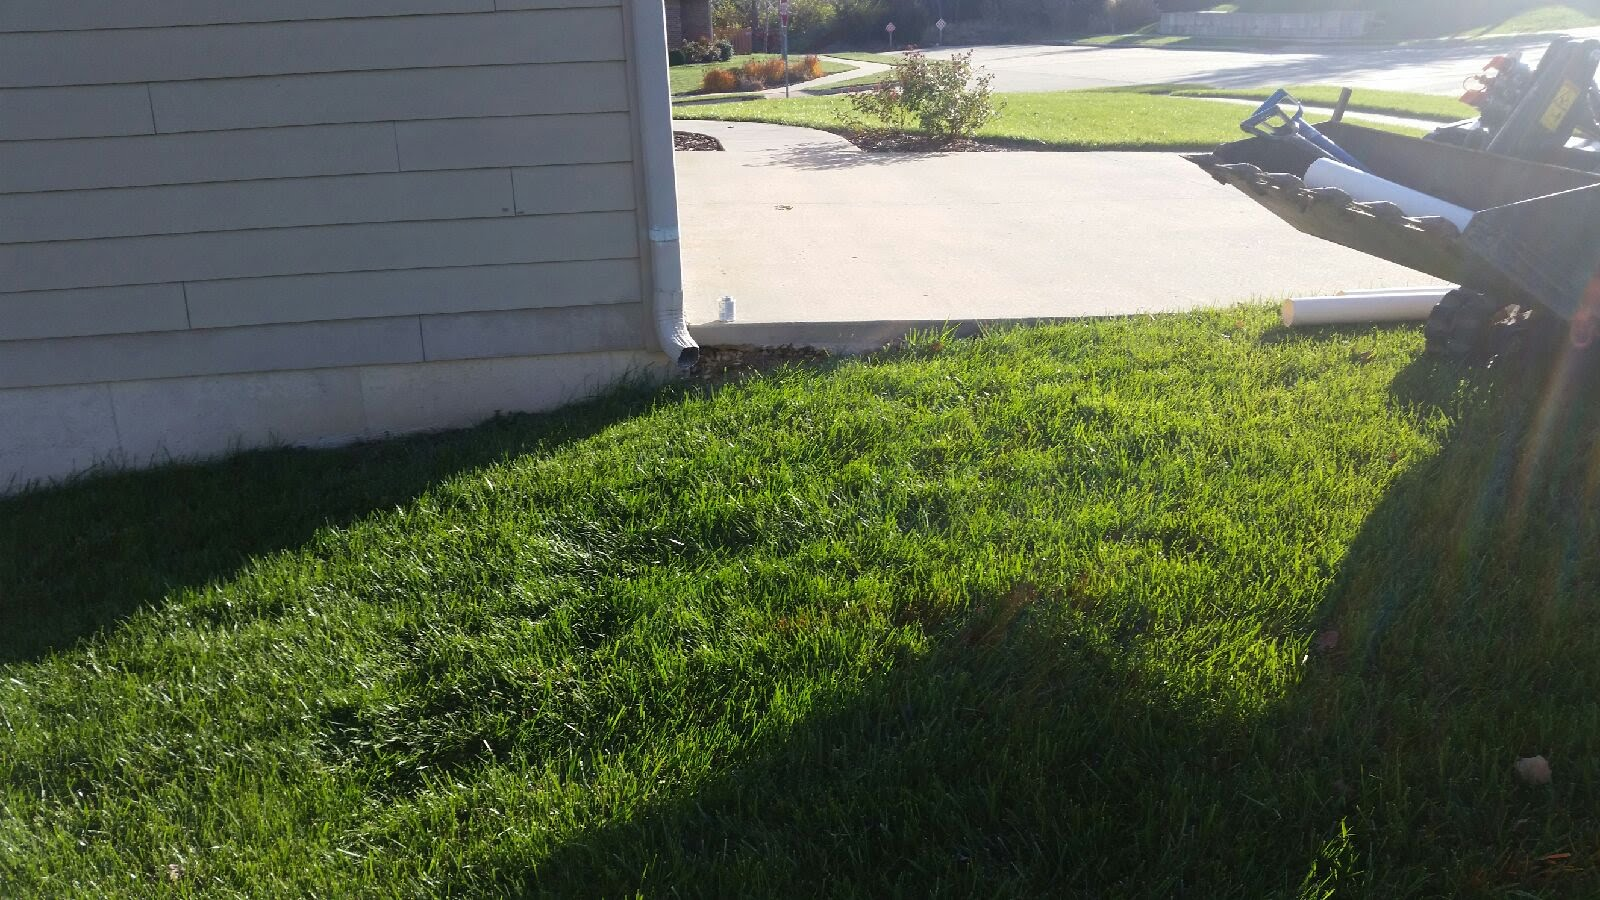 Downspout Drainage Saves Foundations Jolly Lawncare